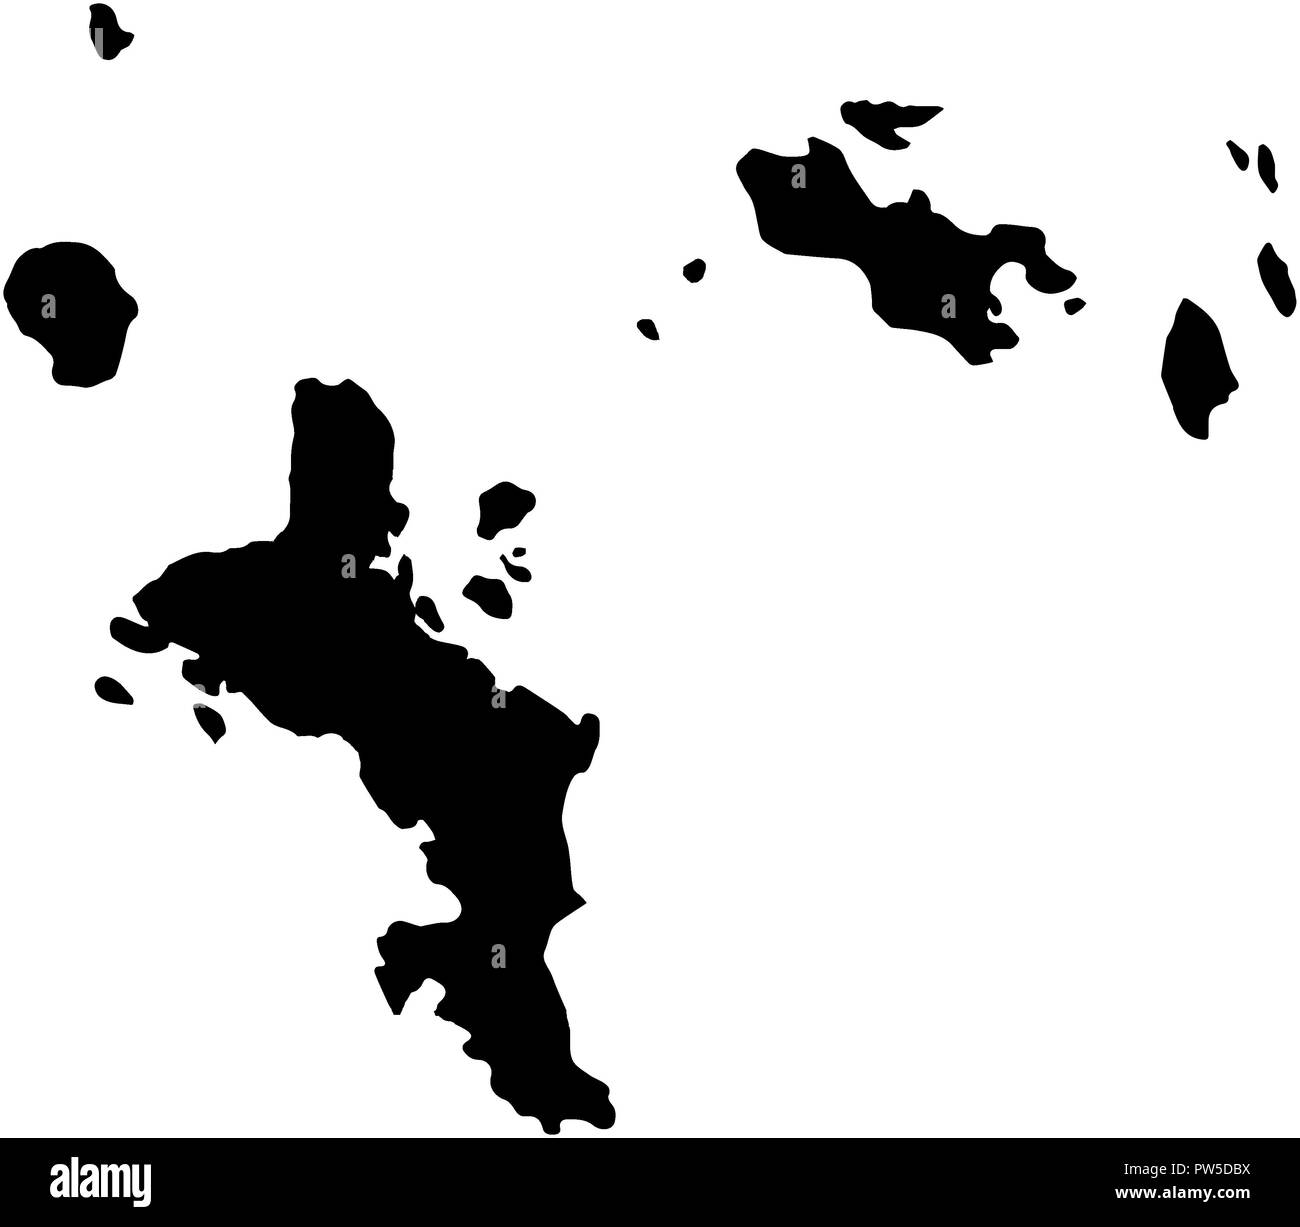 Seychelles islands country Map illustration black isolated - Stock Image